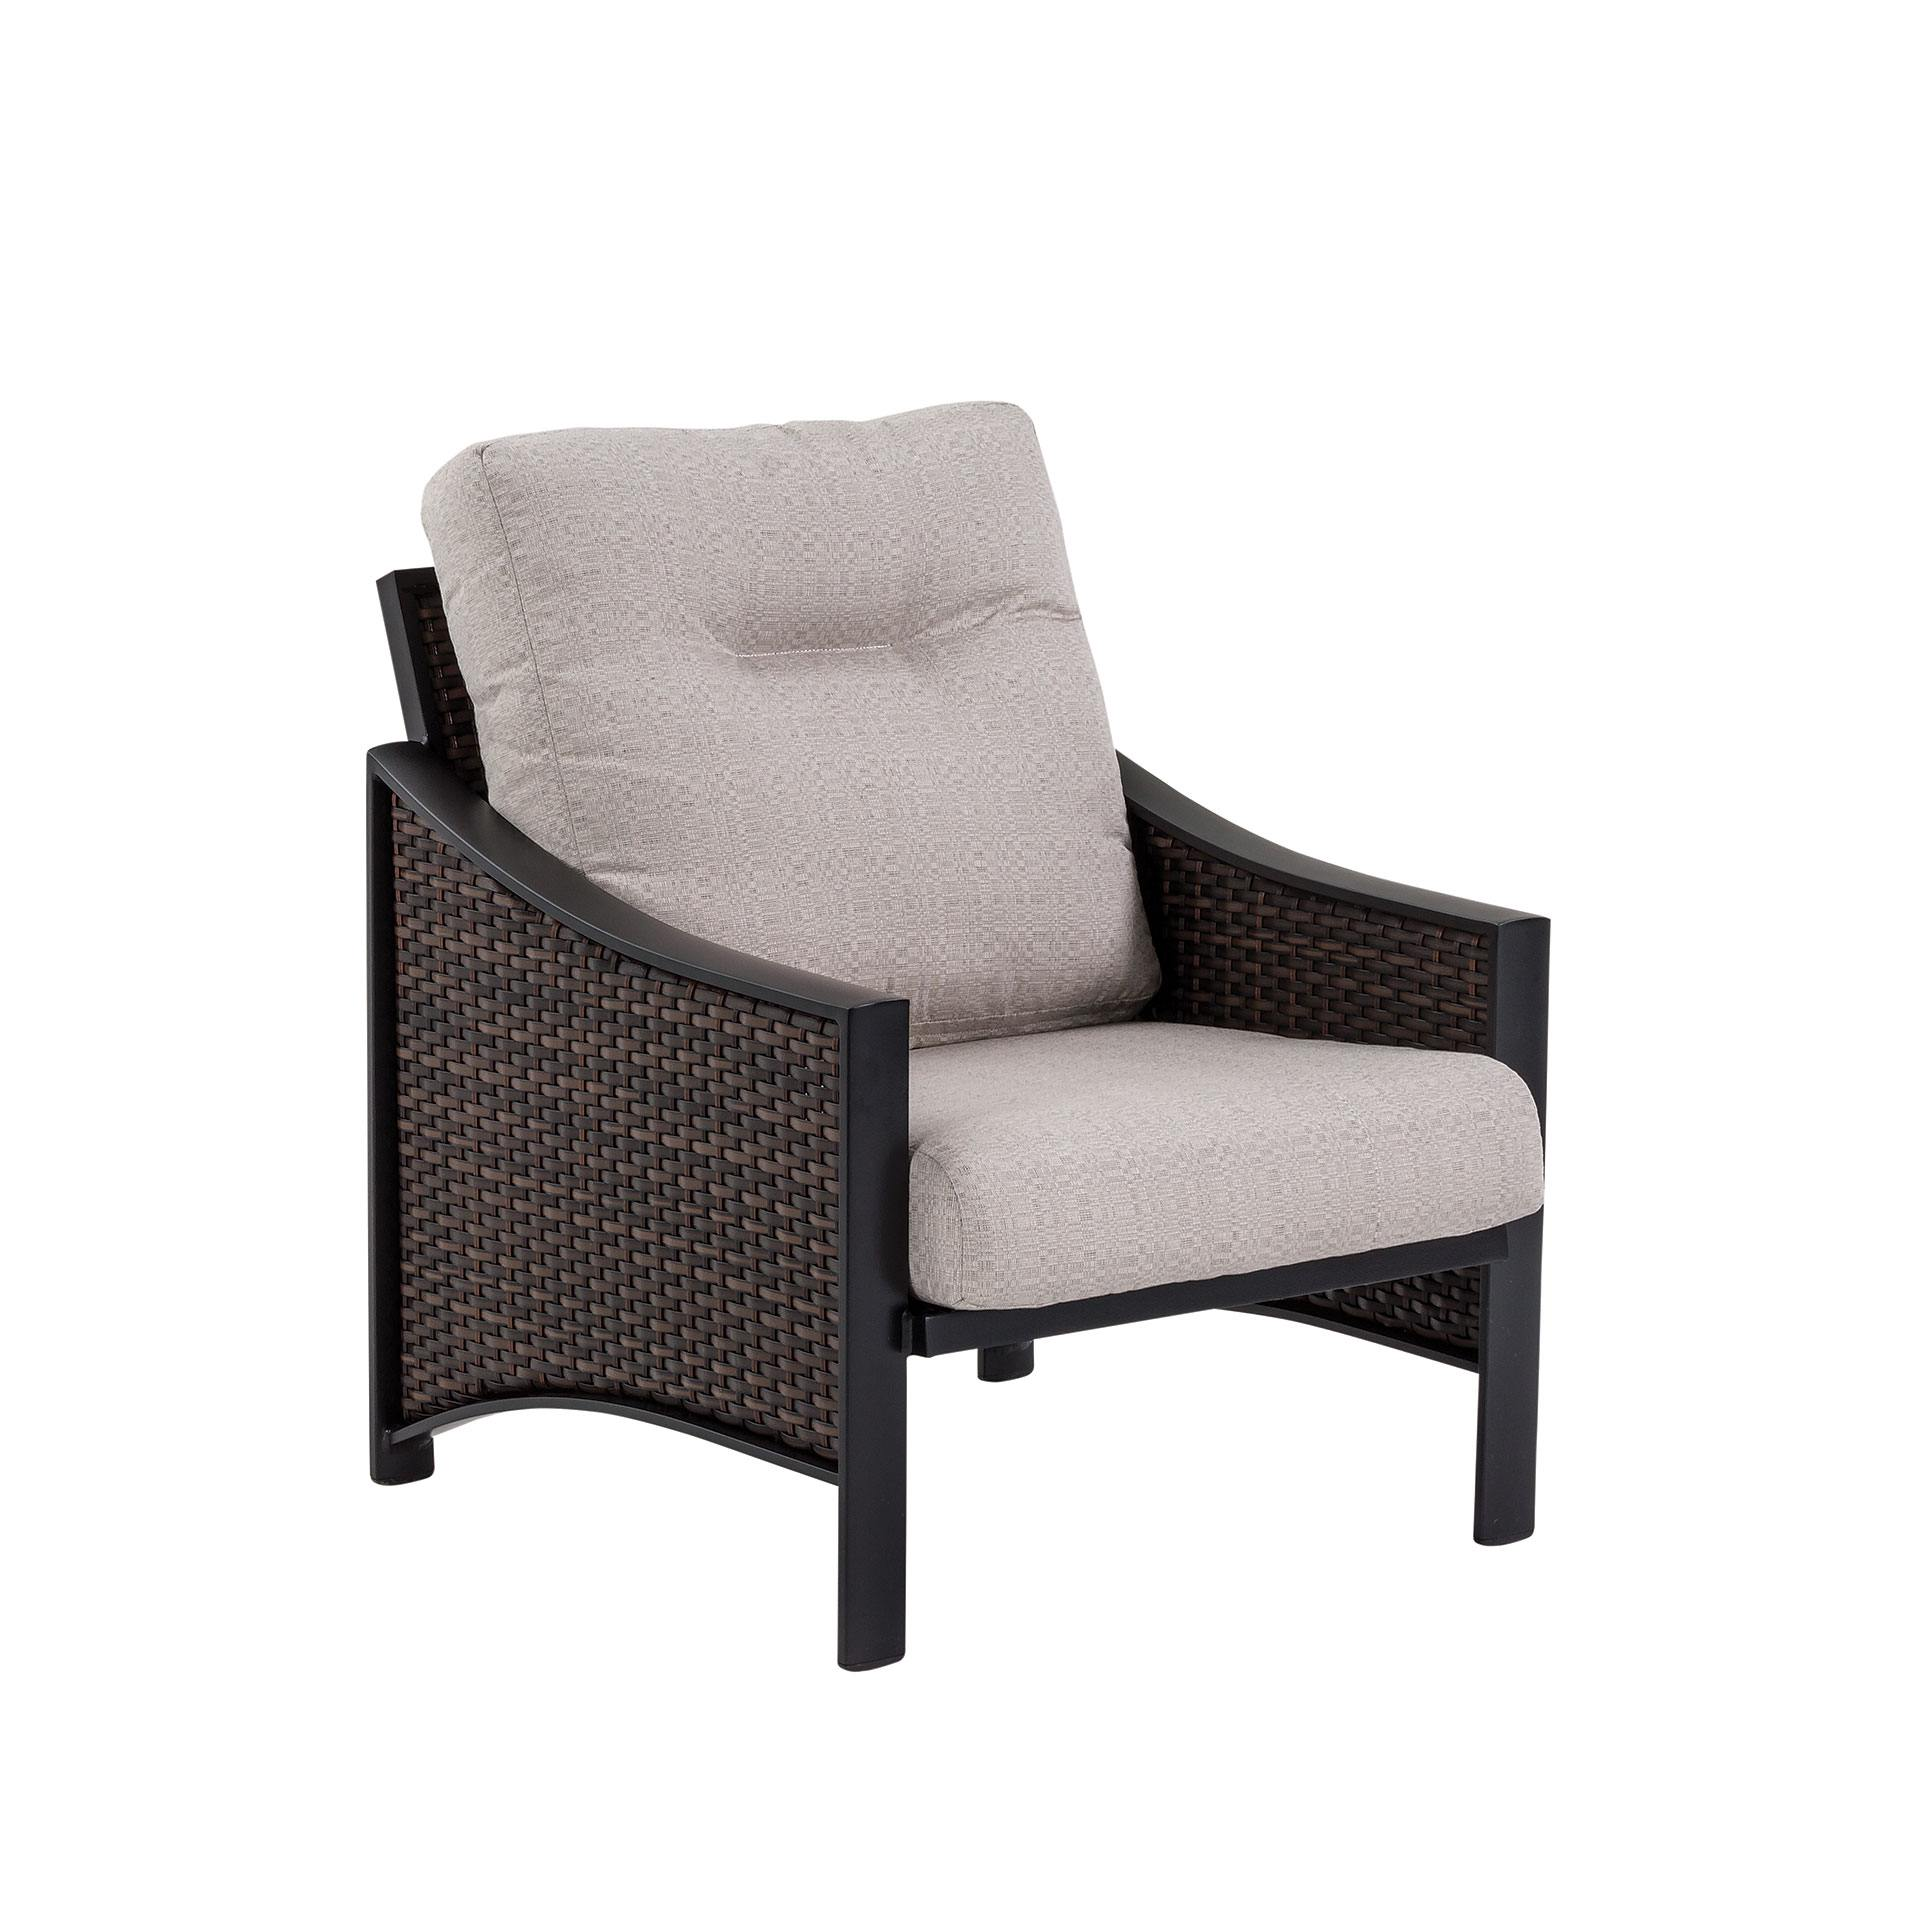 woven lounge chair wheelchair accessible door tropitone kenzo leisure living